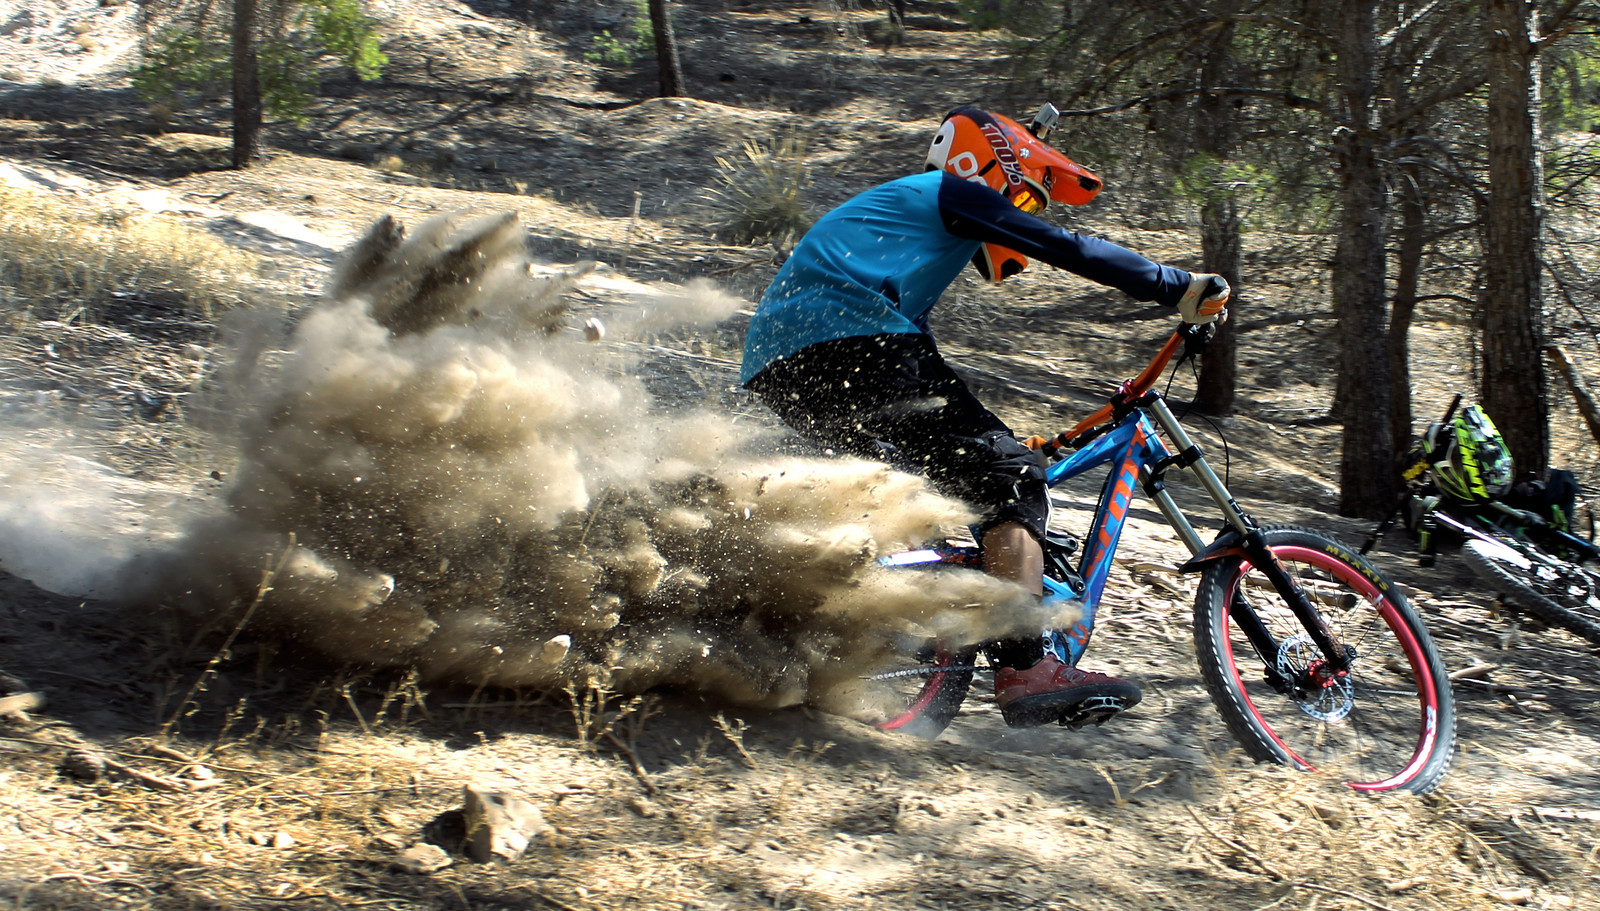 Braaaap!! - wardog - Mountain Biking Pictures - Vital MTB